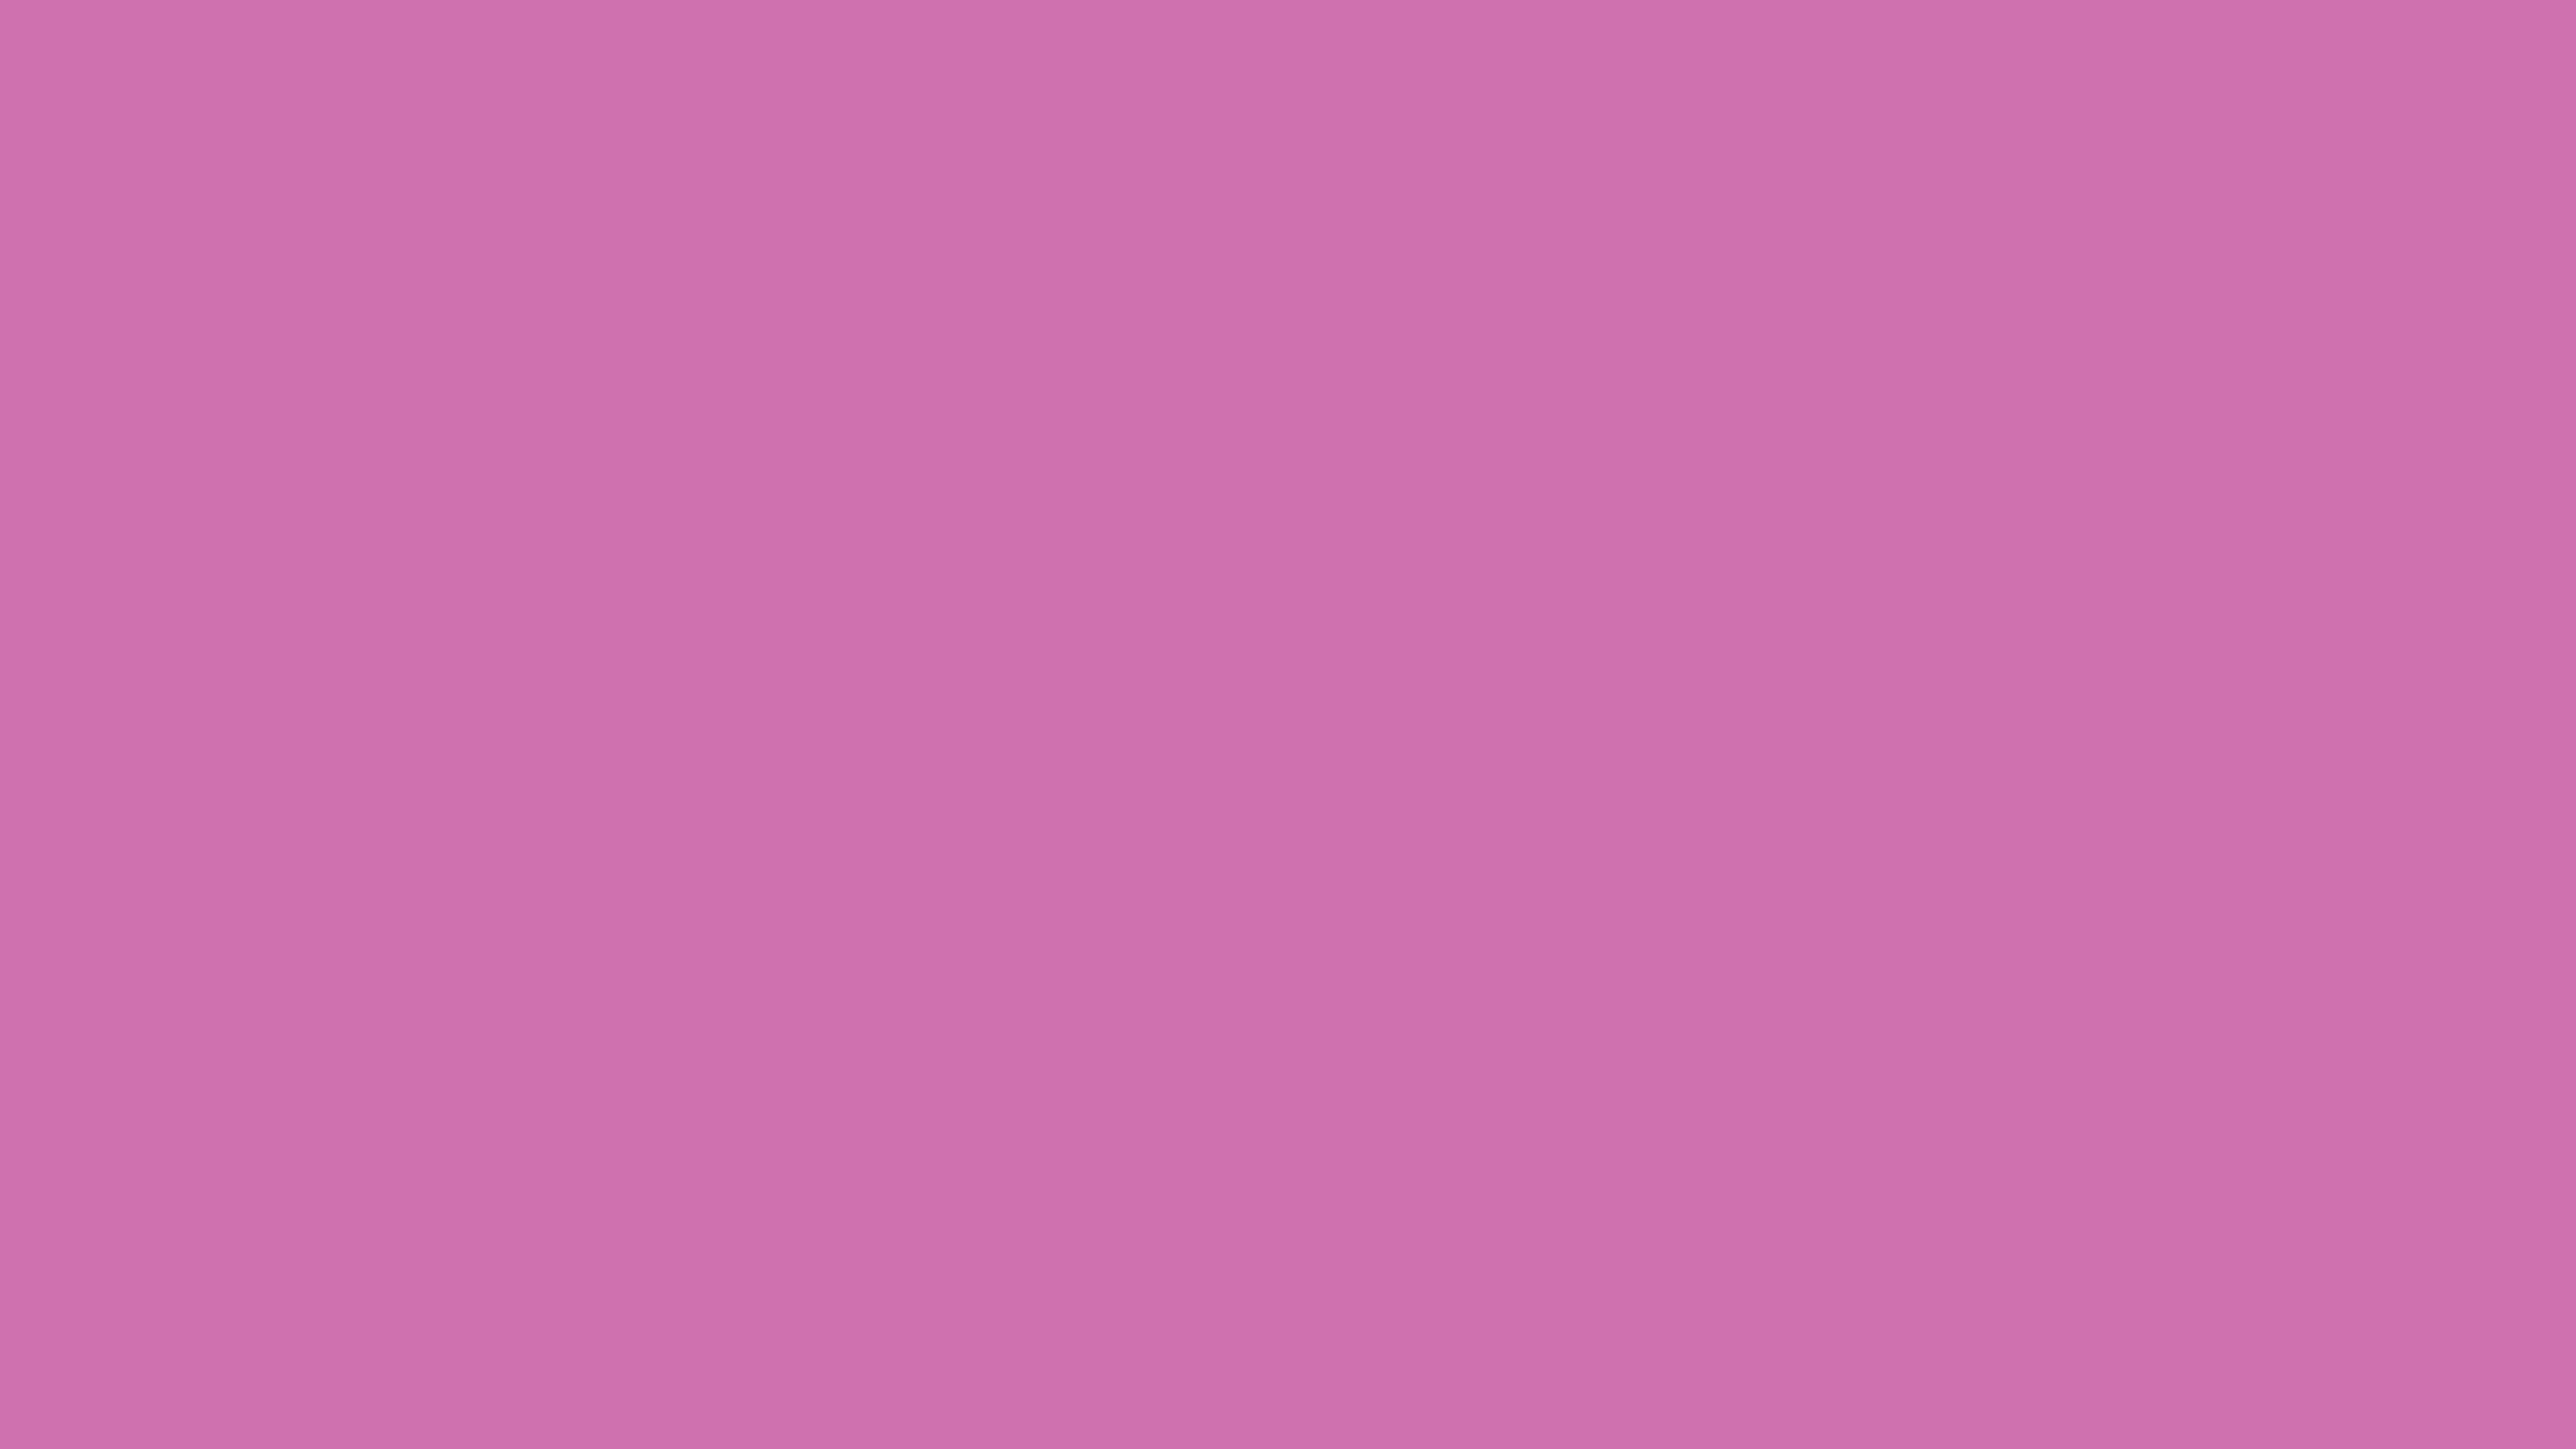 3840x2160 Sky Magenta Solid Color Background